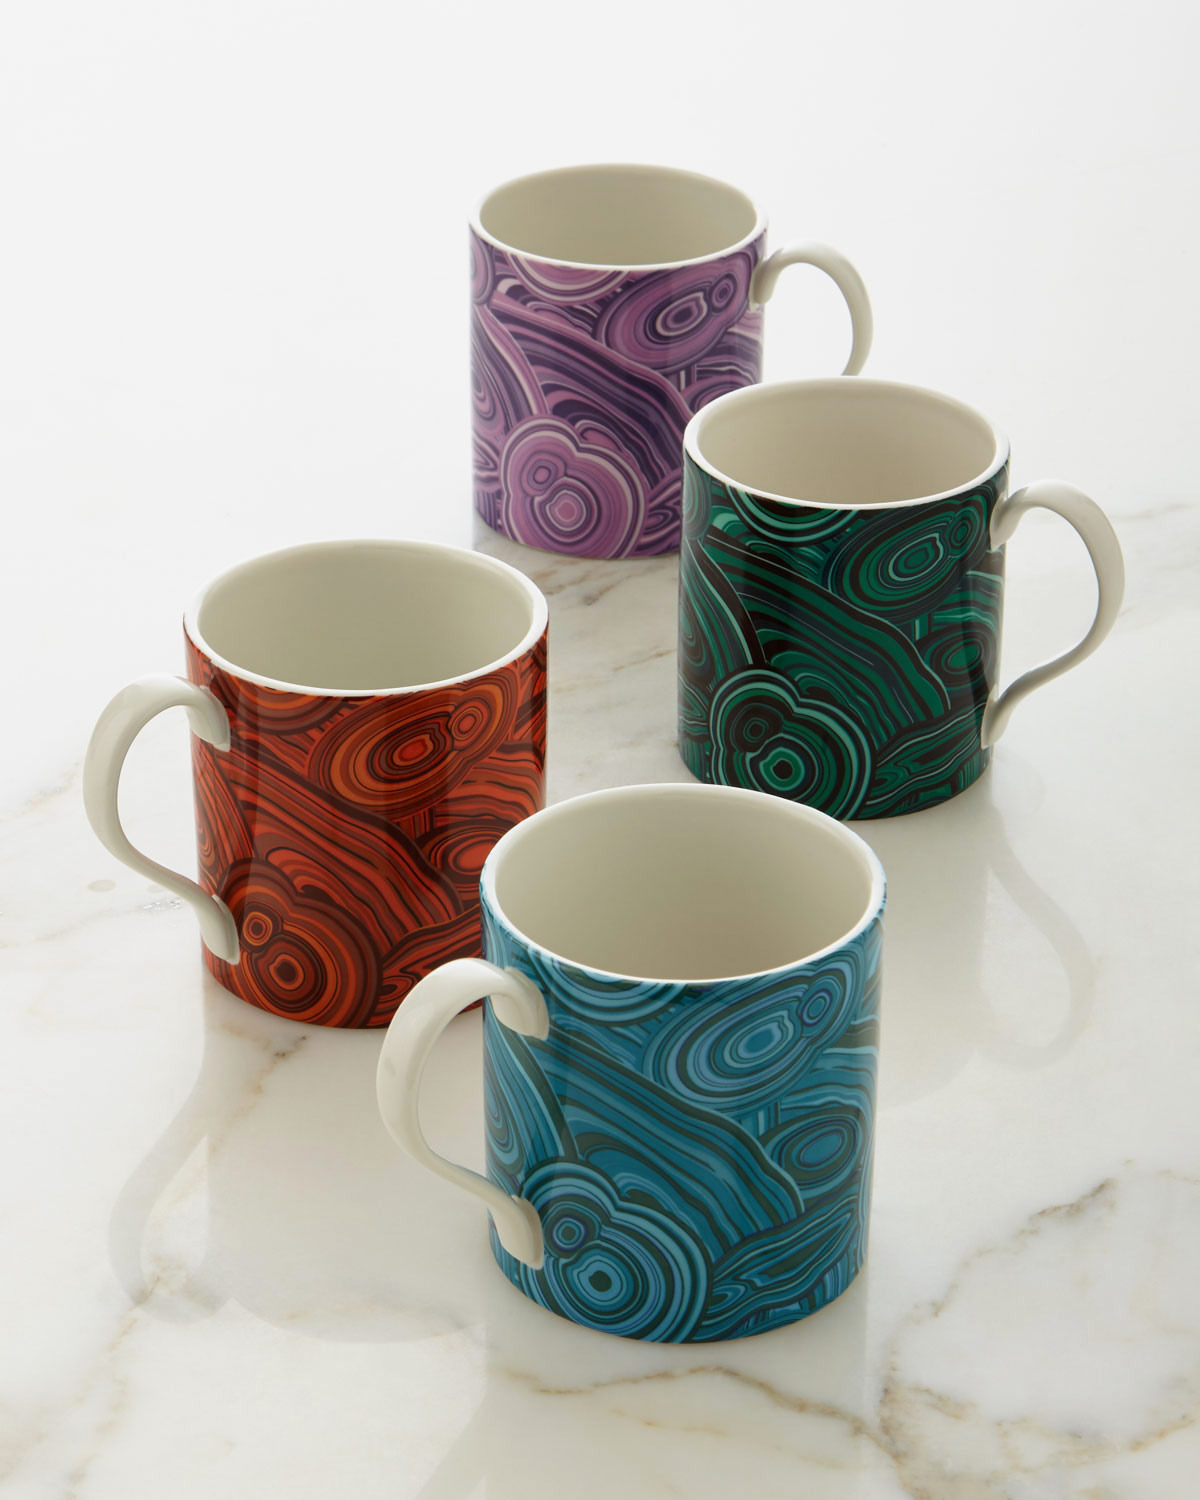 Jonathan Adler Malachite-Patterned Mugs, 4-Piece Set